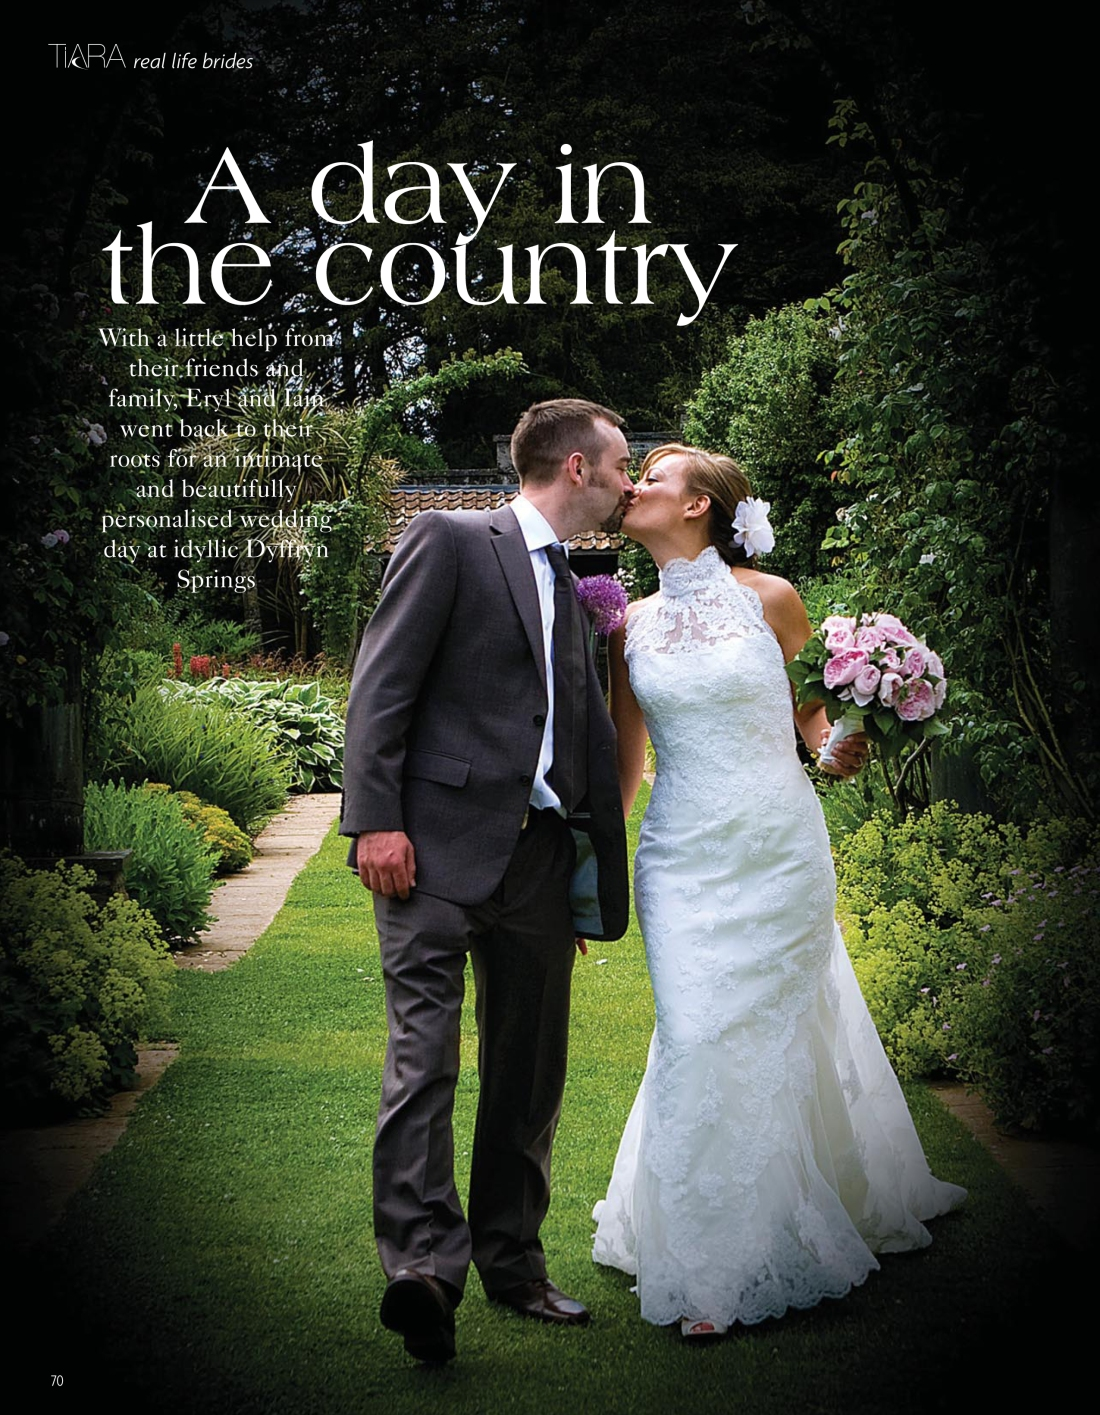 Real life brides feature, Eryl and Iain, Tiara magazine Spring 2010 issue-page 1 - Amy Lewis